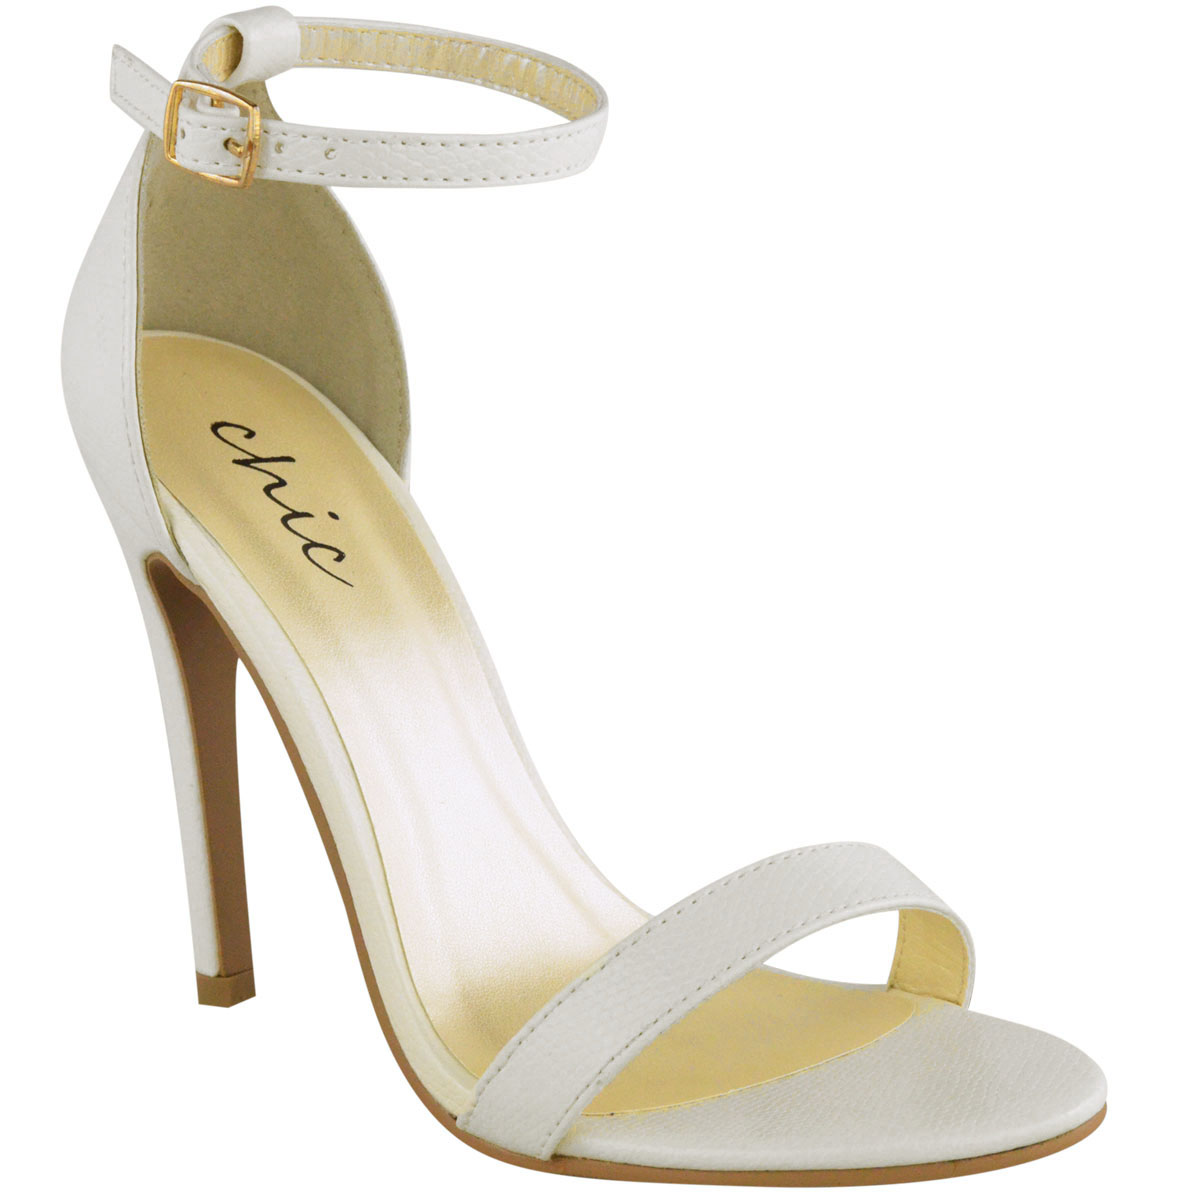 Womens La s Barely There High Heel Party Wedding Sandals Ankle